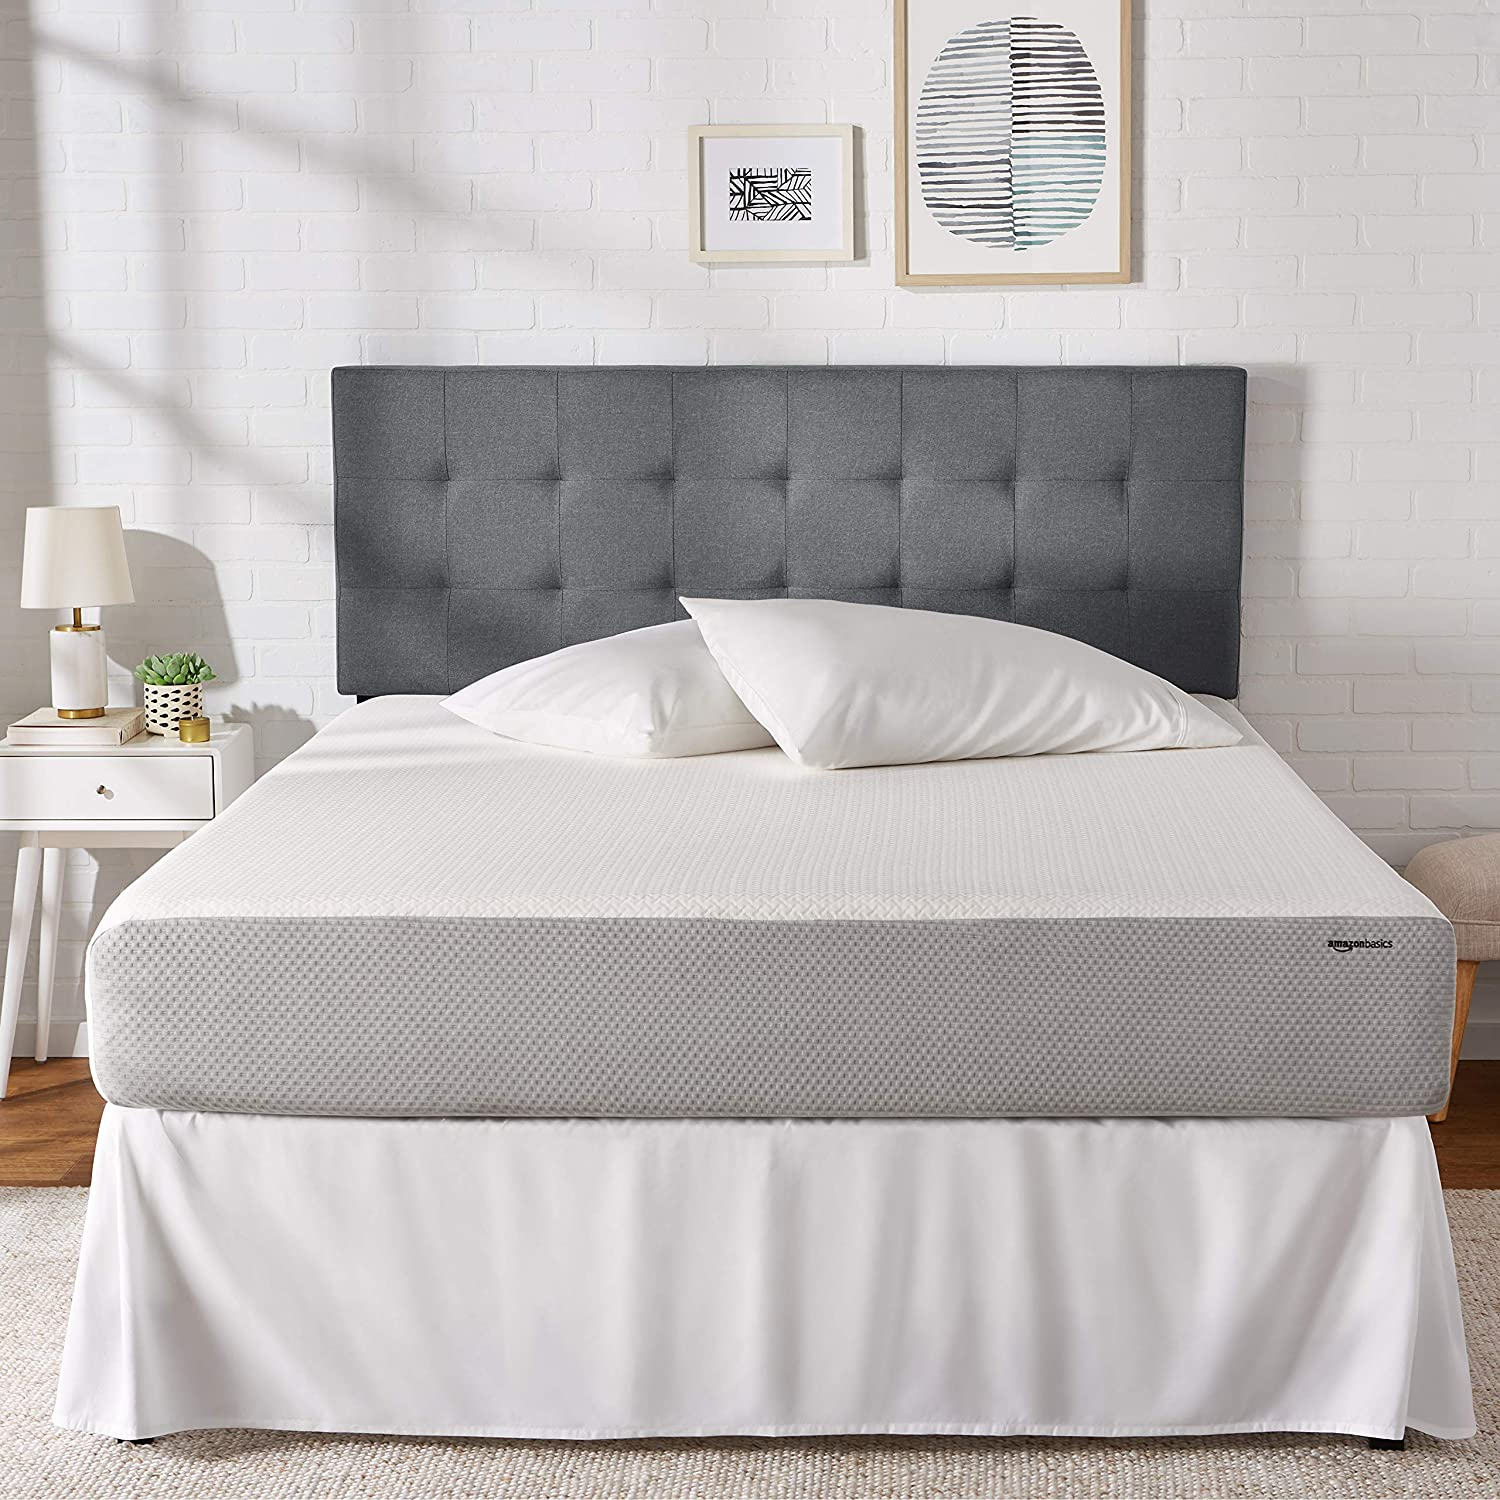 7 Easy Facts About Amazon Mattress Described